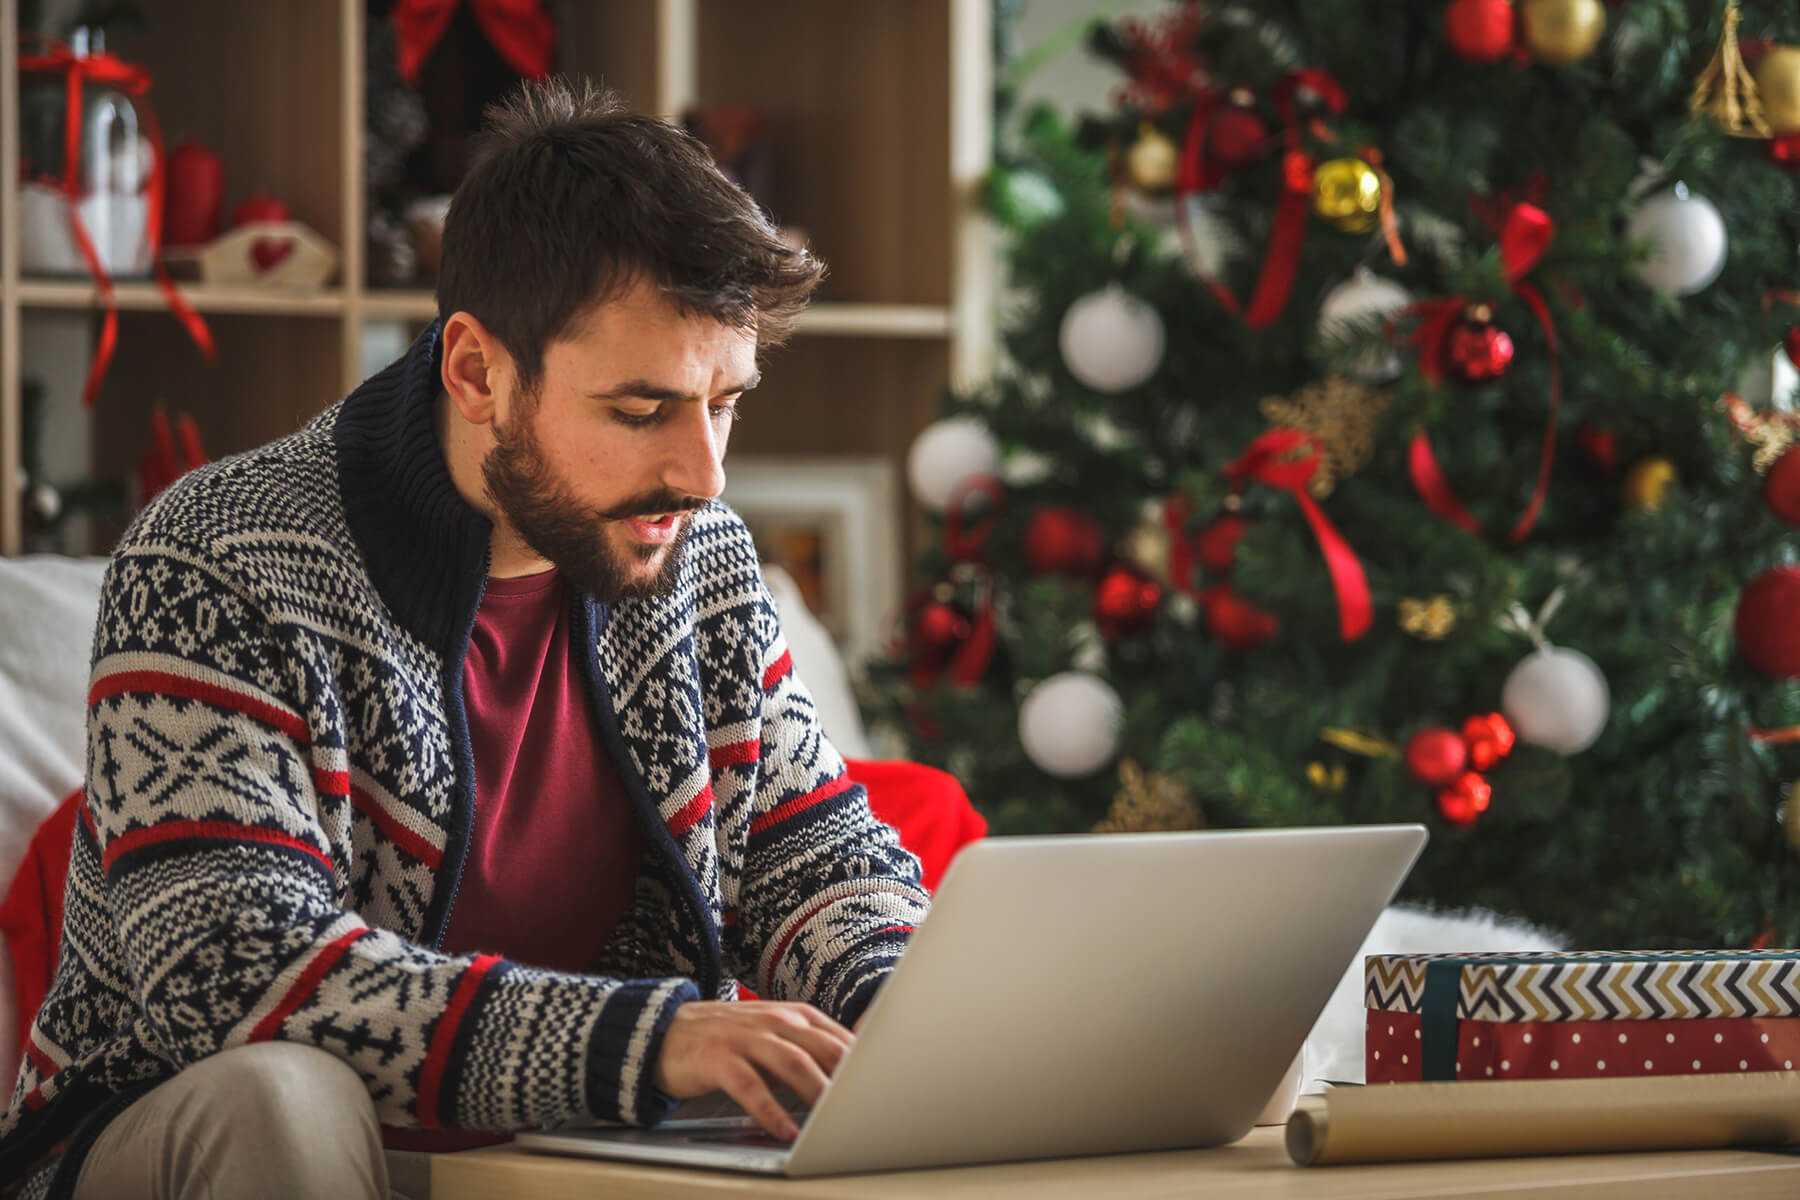 Man sits with a laptop in his living room, decorated for the holidays